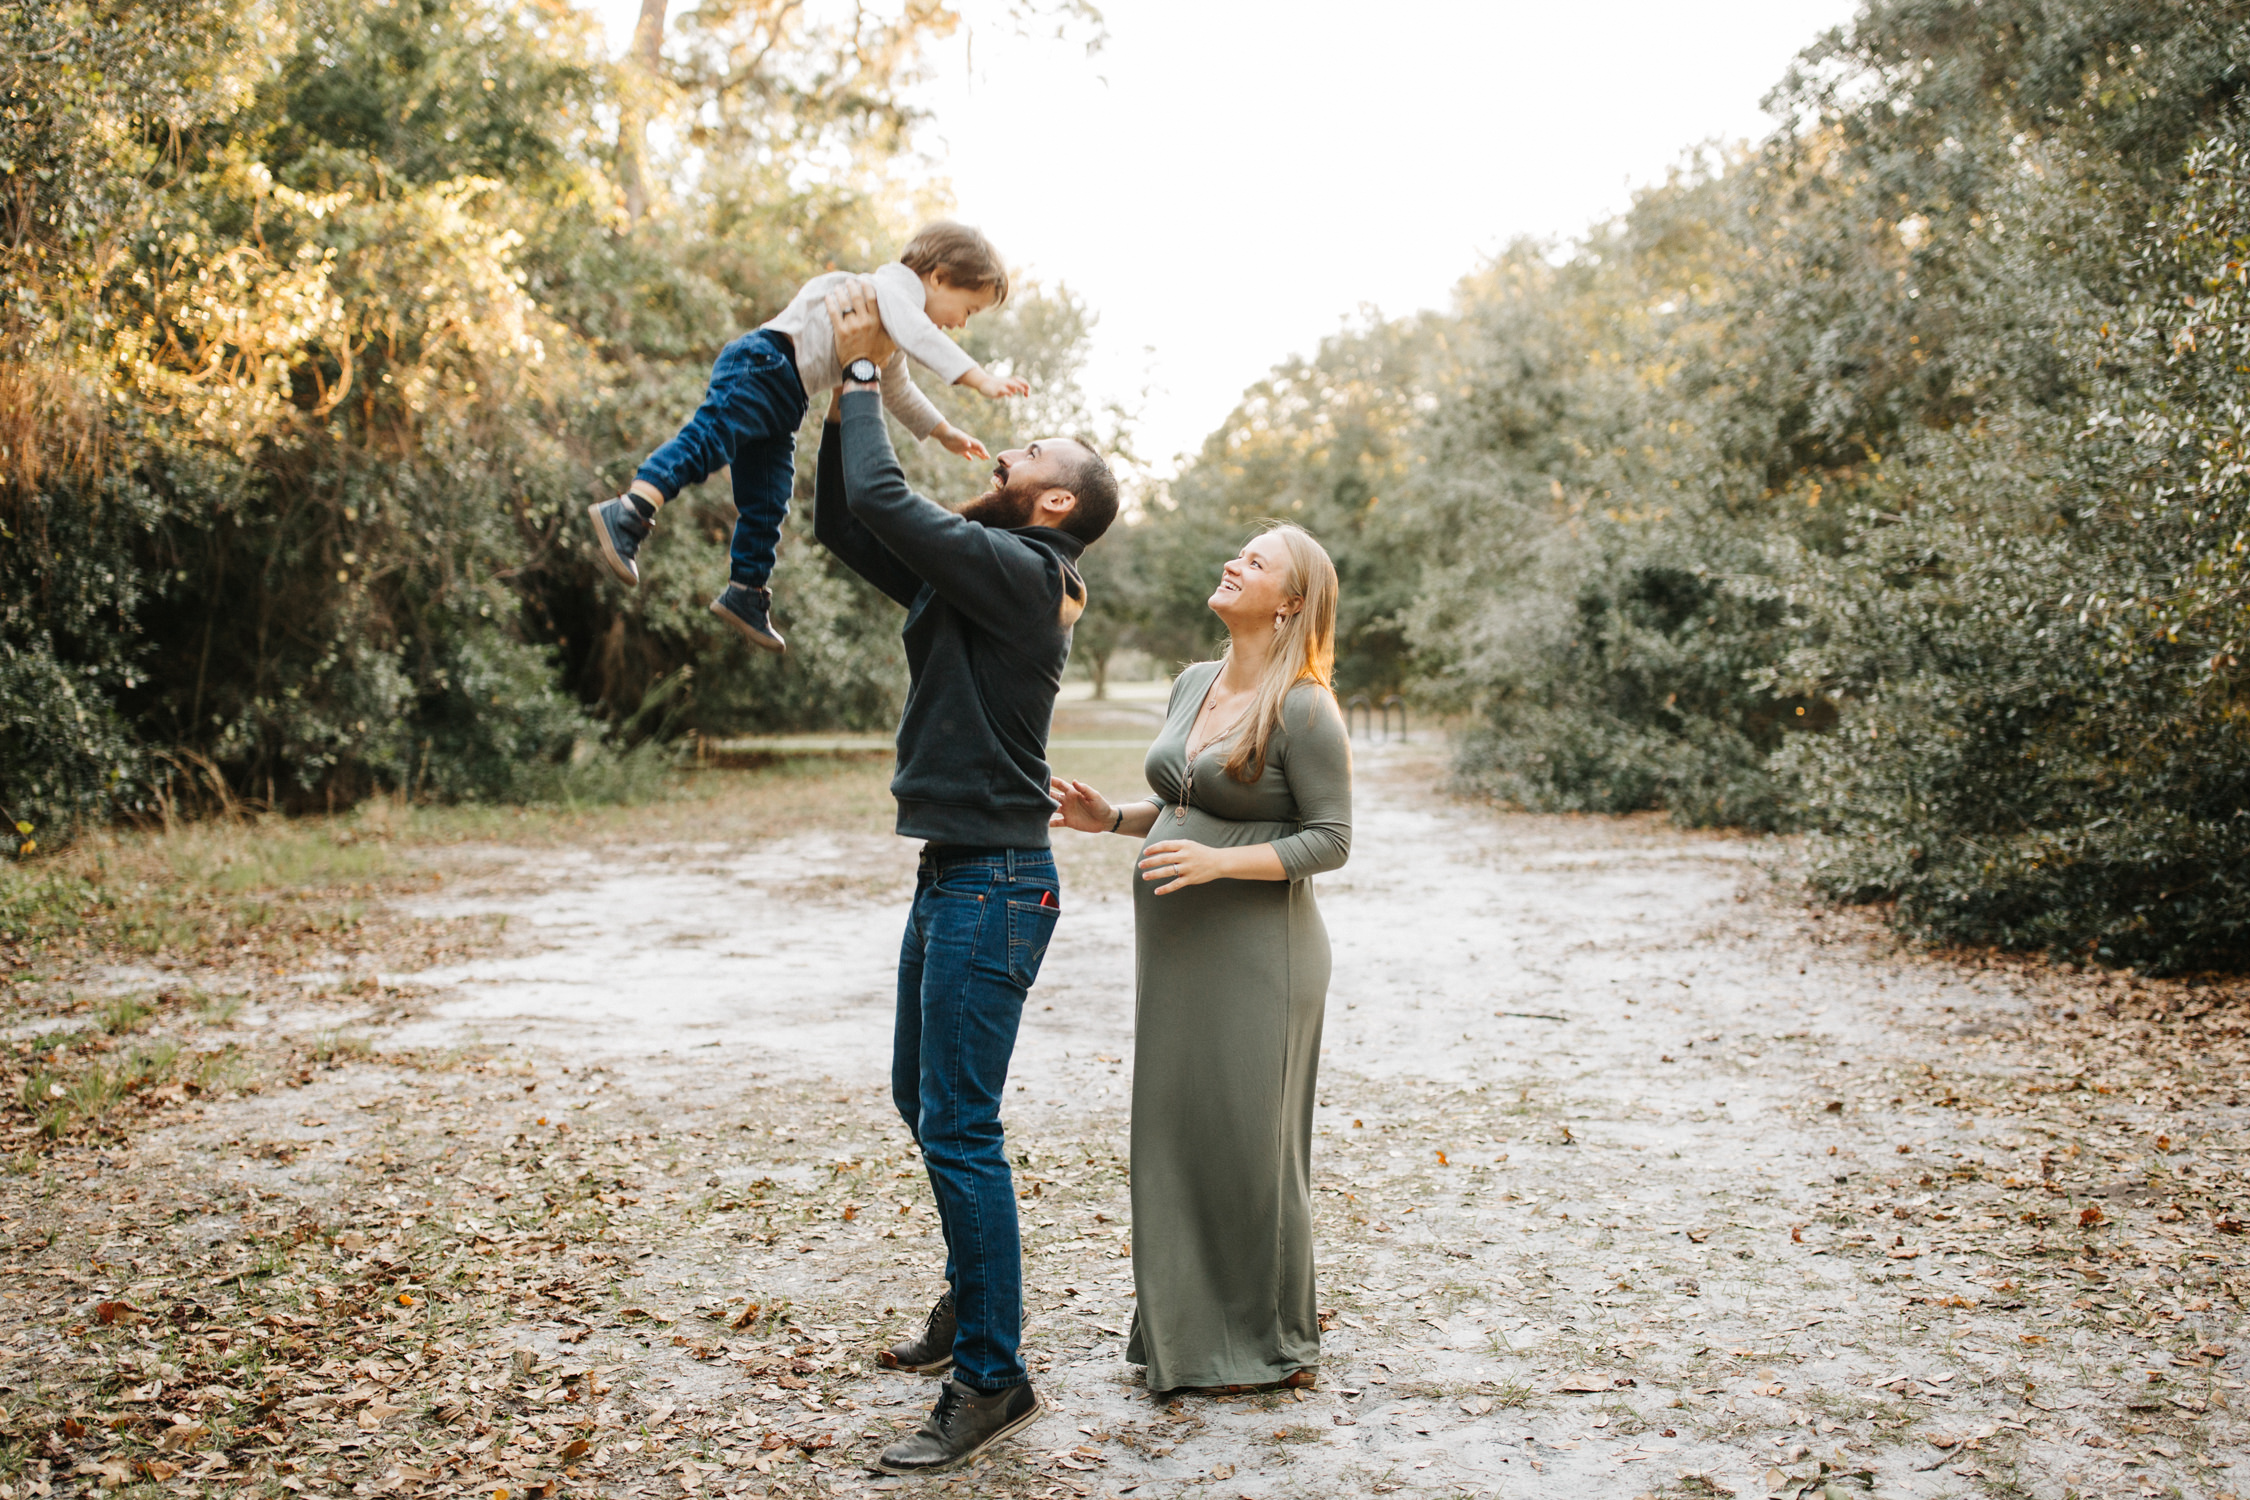 tampa-family-lifestyle-photographer-candid-natural-16